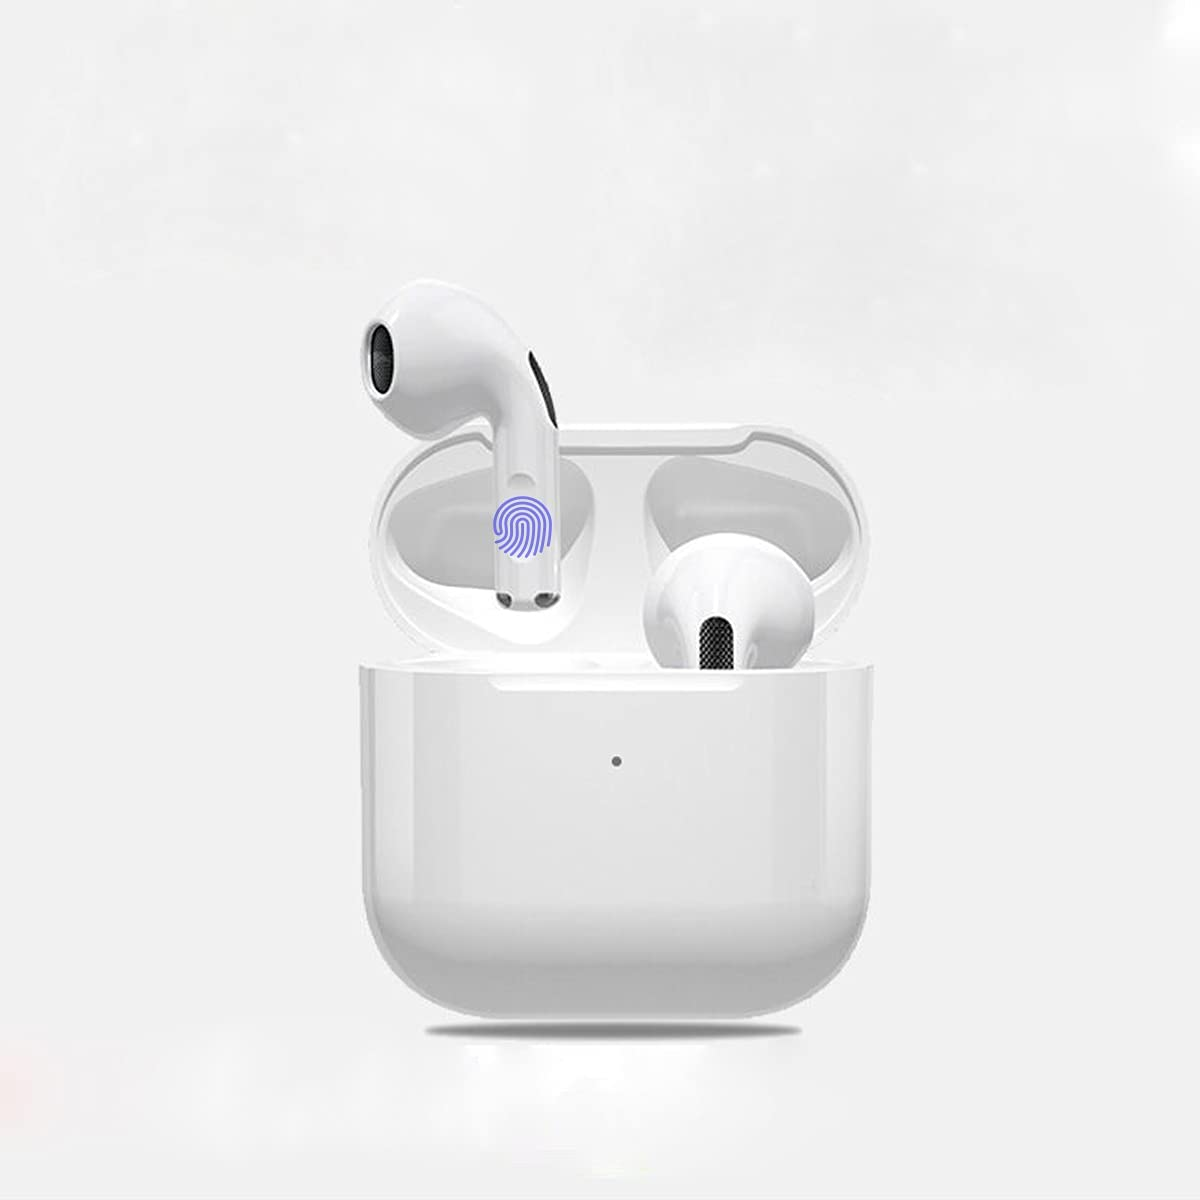 Wireless Earbuds,TWS Bluetooth Headphones, Stereo Headset, with Touch Control Type-C Quick Charge 30H Playtime IPX5 Waterproof Built-in Mic Earphones for iPhone/Android (White)